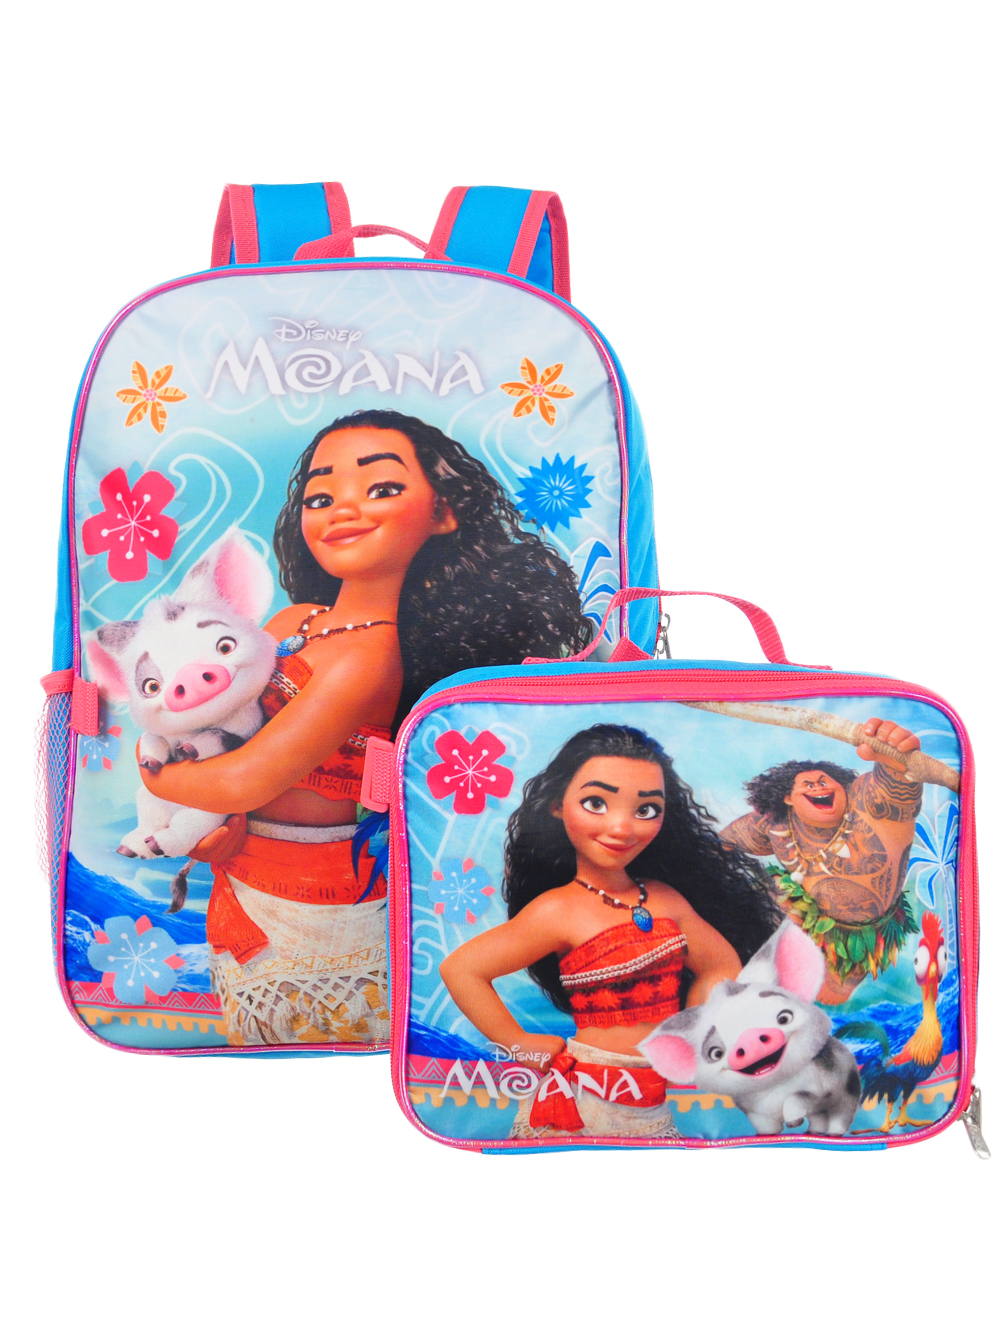 Disney Moana Backpack with Insulated Lunchbox